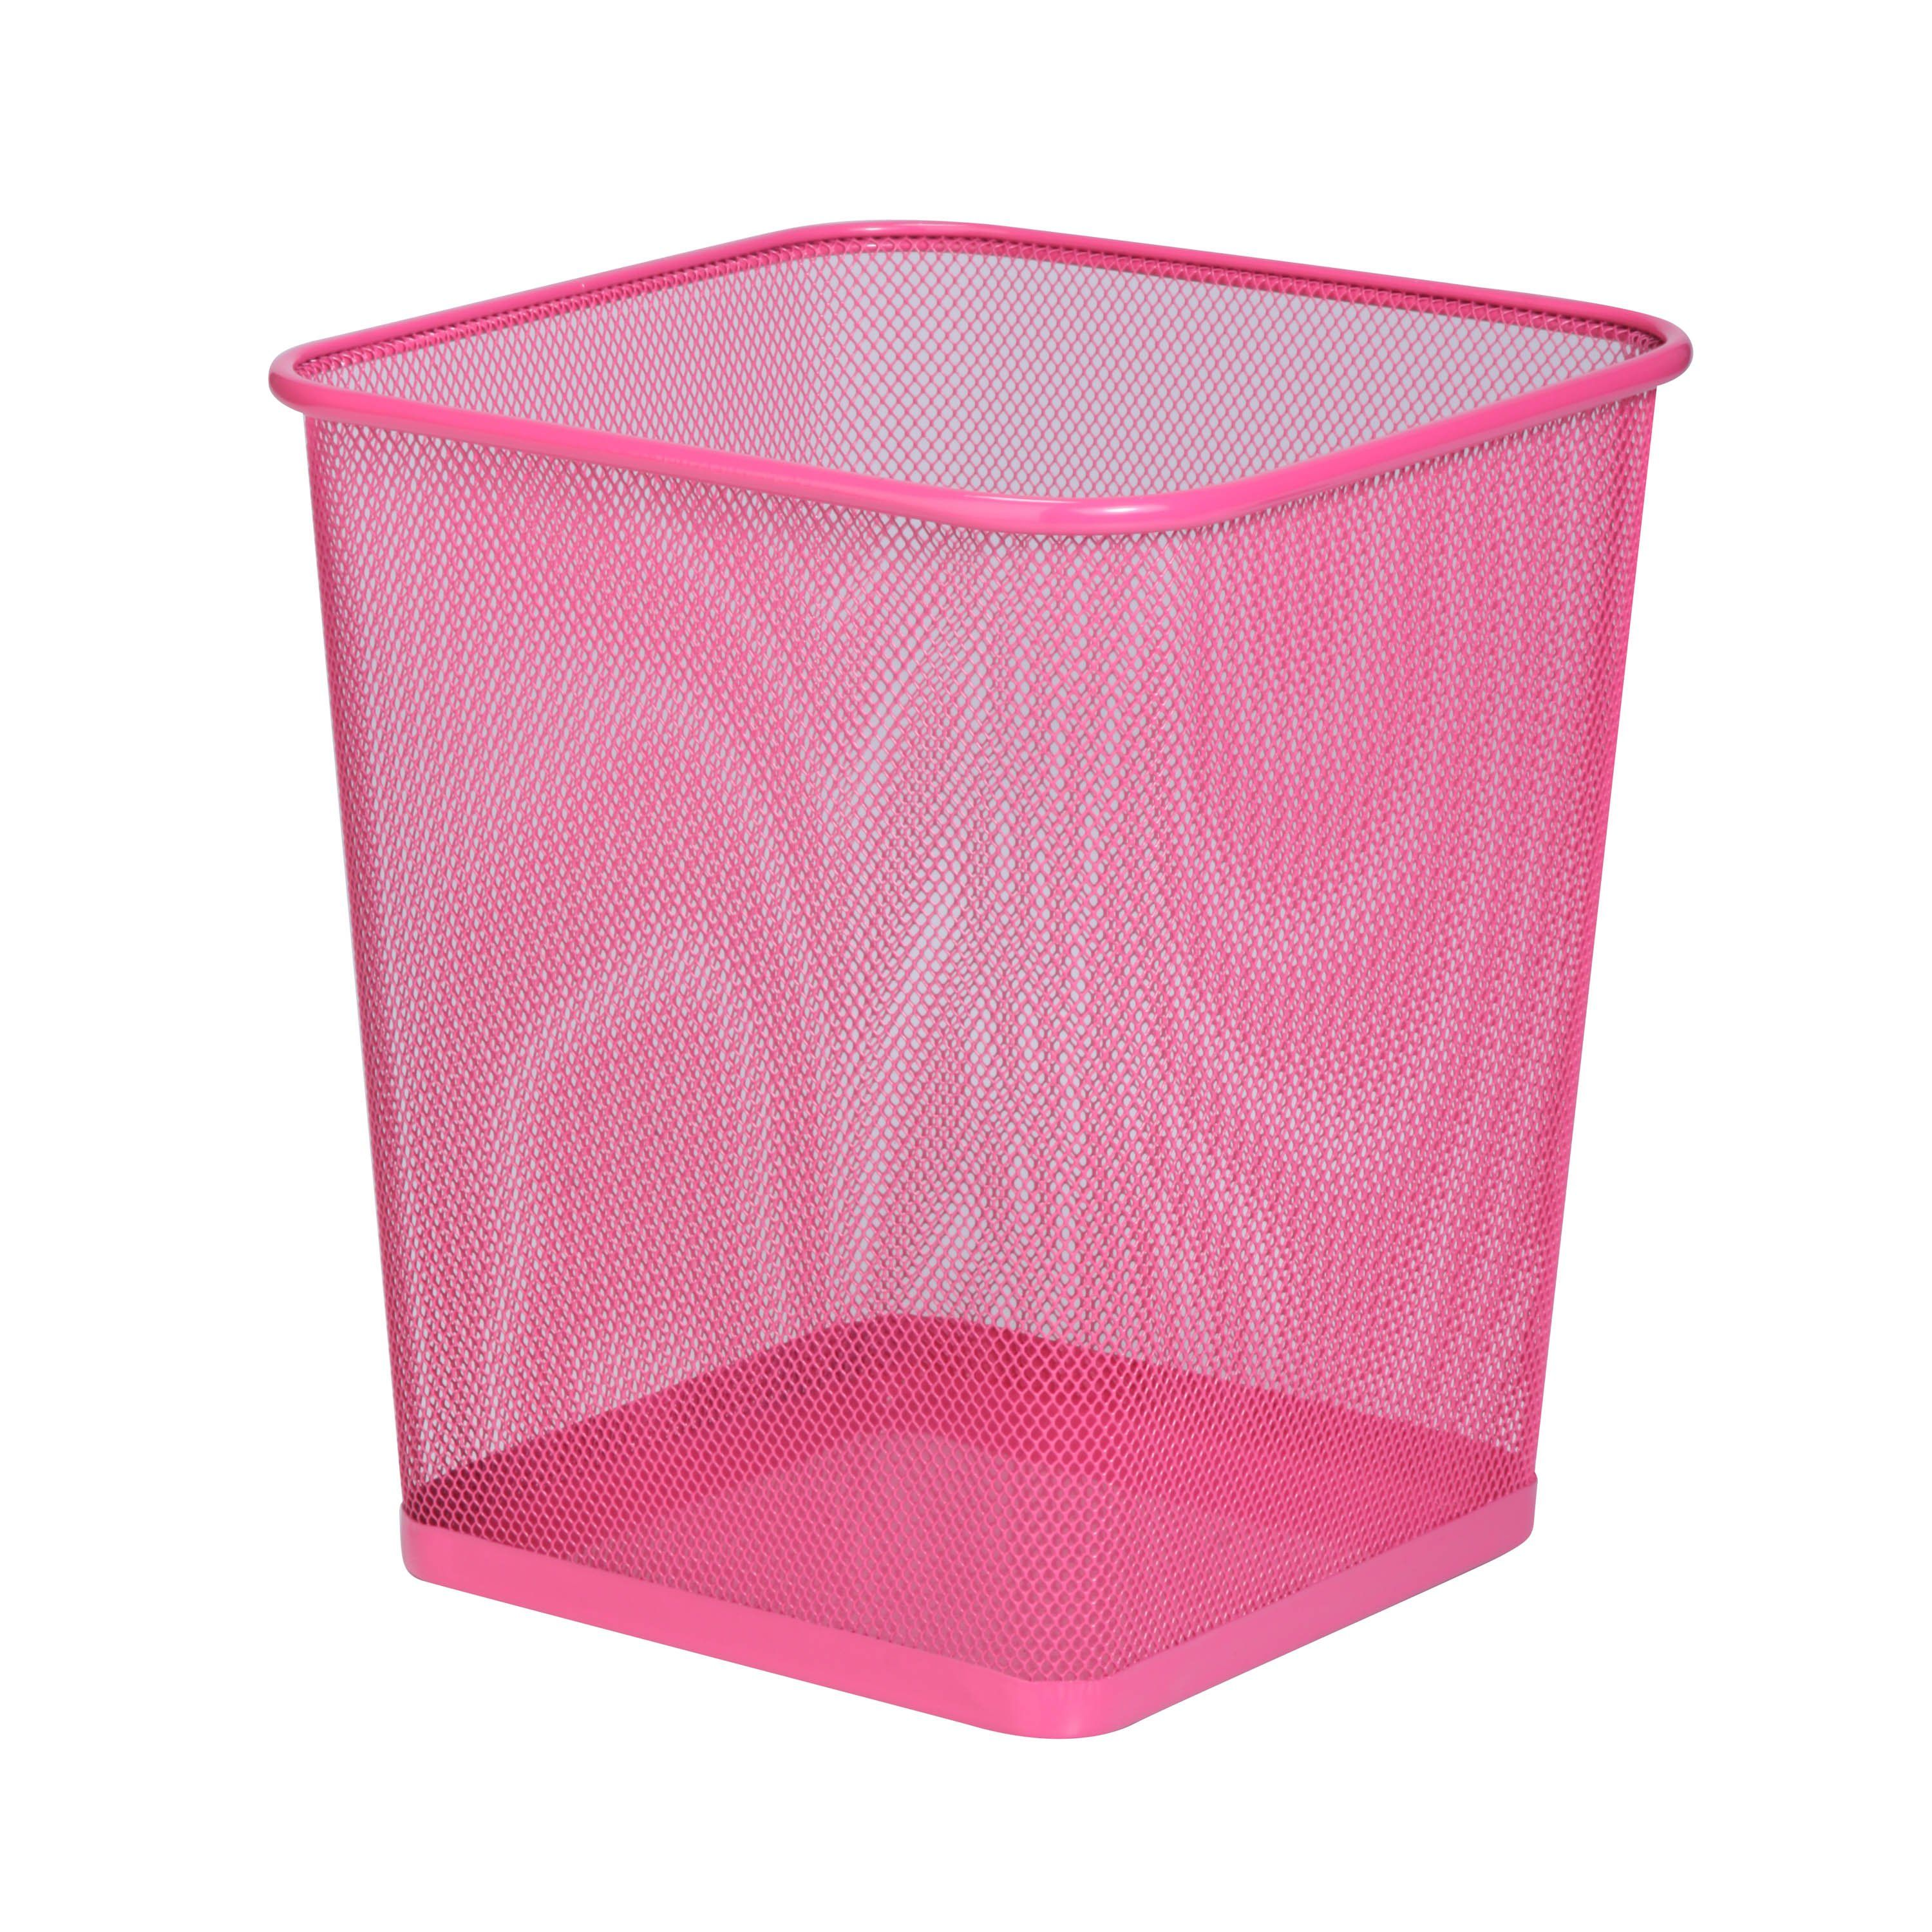 Dimensions: 10.5'' L x 10.5'' W x 12'' H TRS-05085 This steel trash can combines modern styling and sturdy construction. It's the perfect size for bathrooms, dorms, and offices and works well with or without commonly available trash bags. The solid metal base keeps potential liquid spills contained. Create a contemporary, polished look with a trash can designed to last for years.